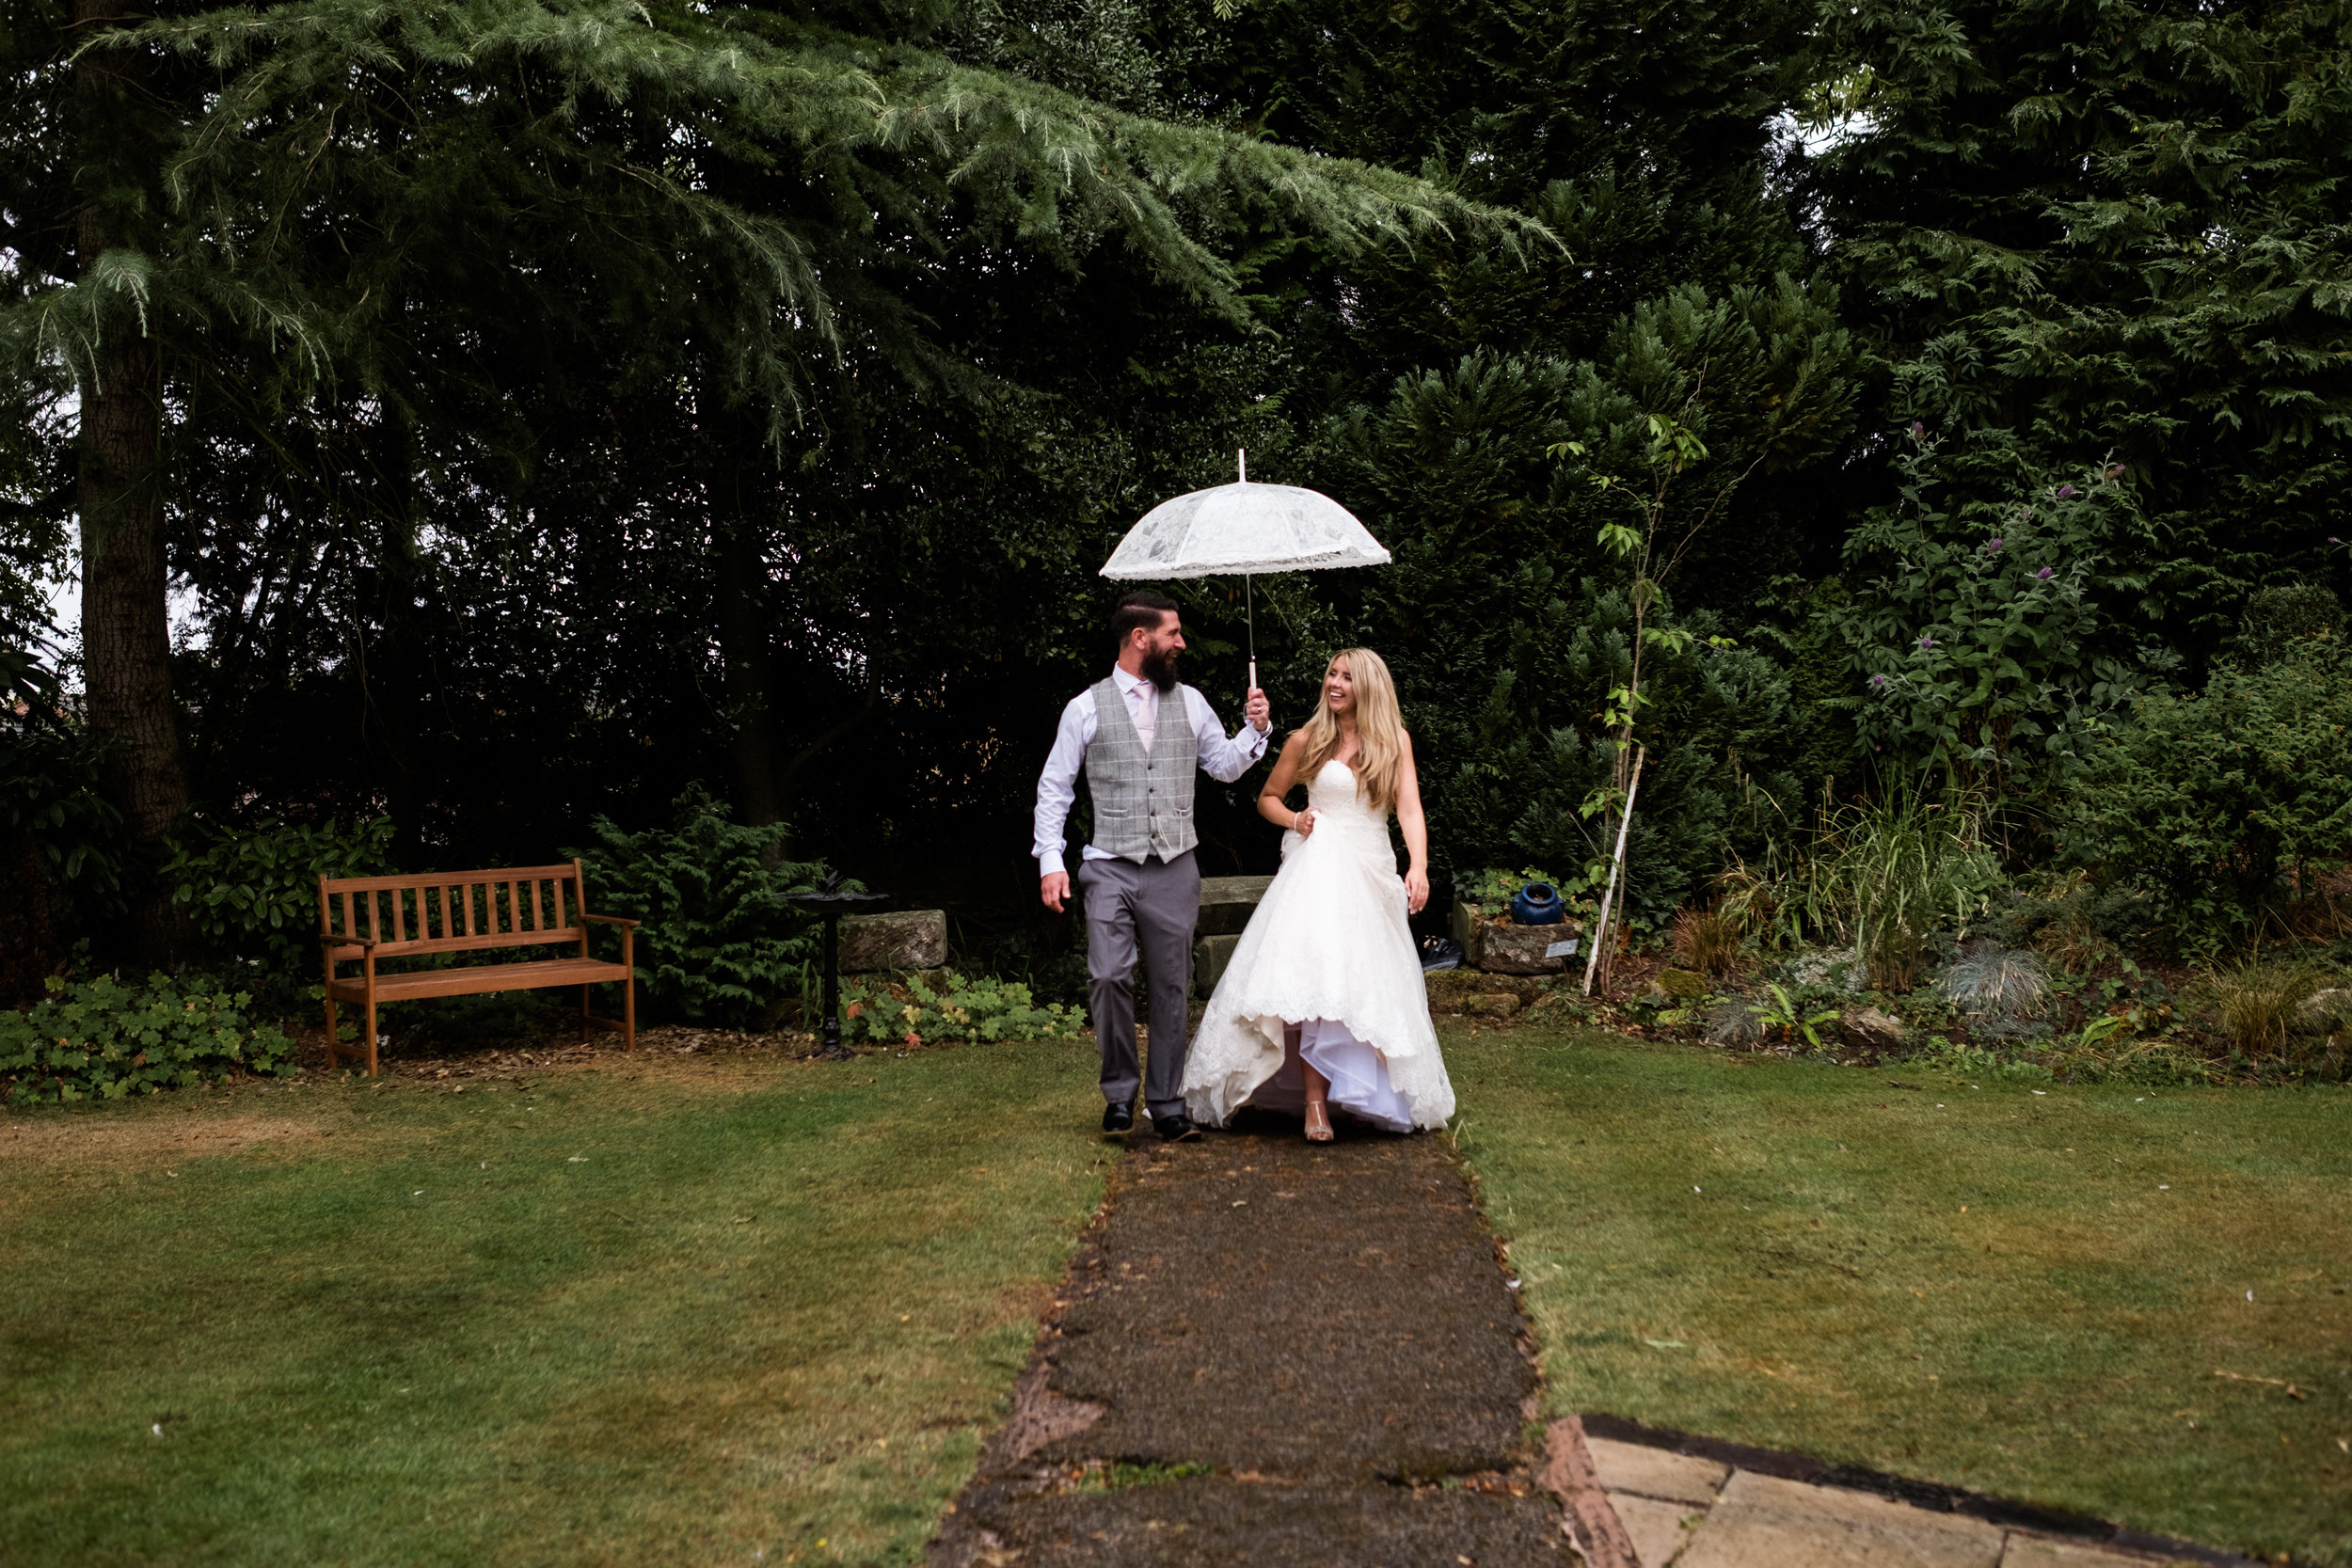 Summer Staffordshire Wedding Photography at The Manor, Cheadle - Jenny Harper-71.jpg